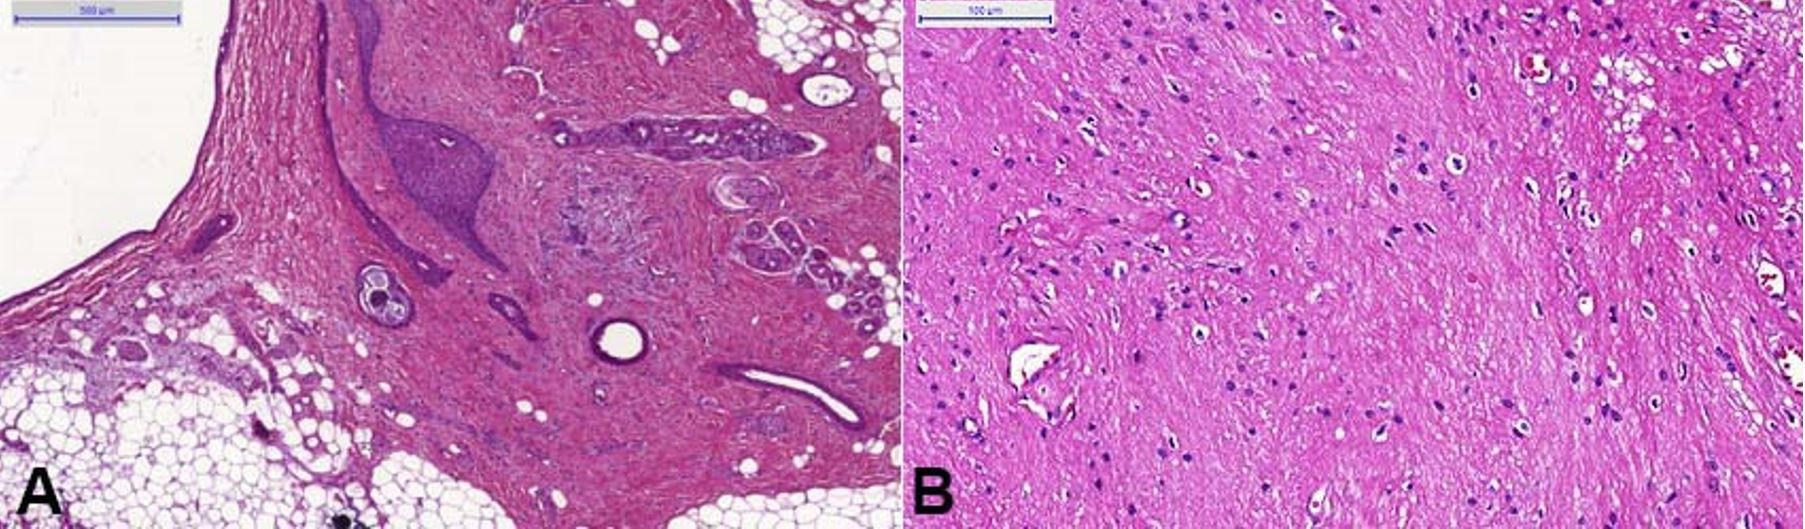 Photomicrographs of the surgical specimen. A – presence of mature, adult-type tissues - skin with cutaneous appendages, connective, and adipose tissues; B – neural component, predominantly composed of glial cells and neuropil.